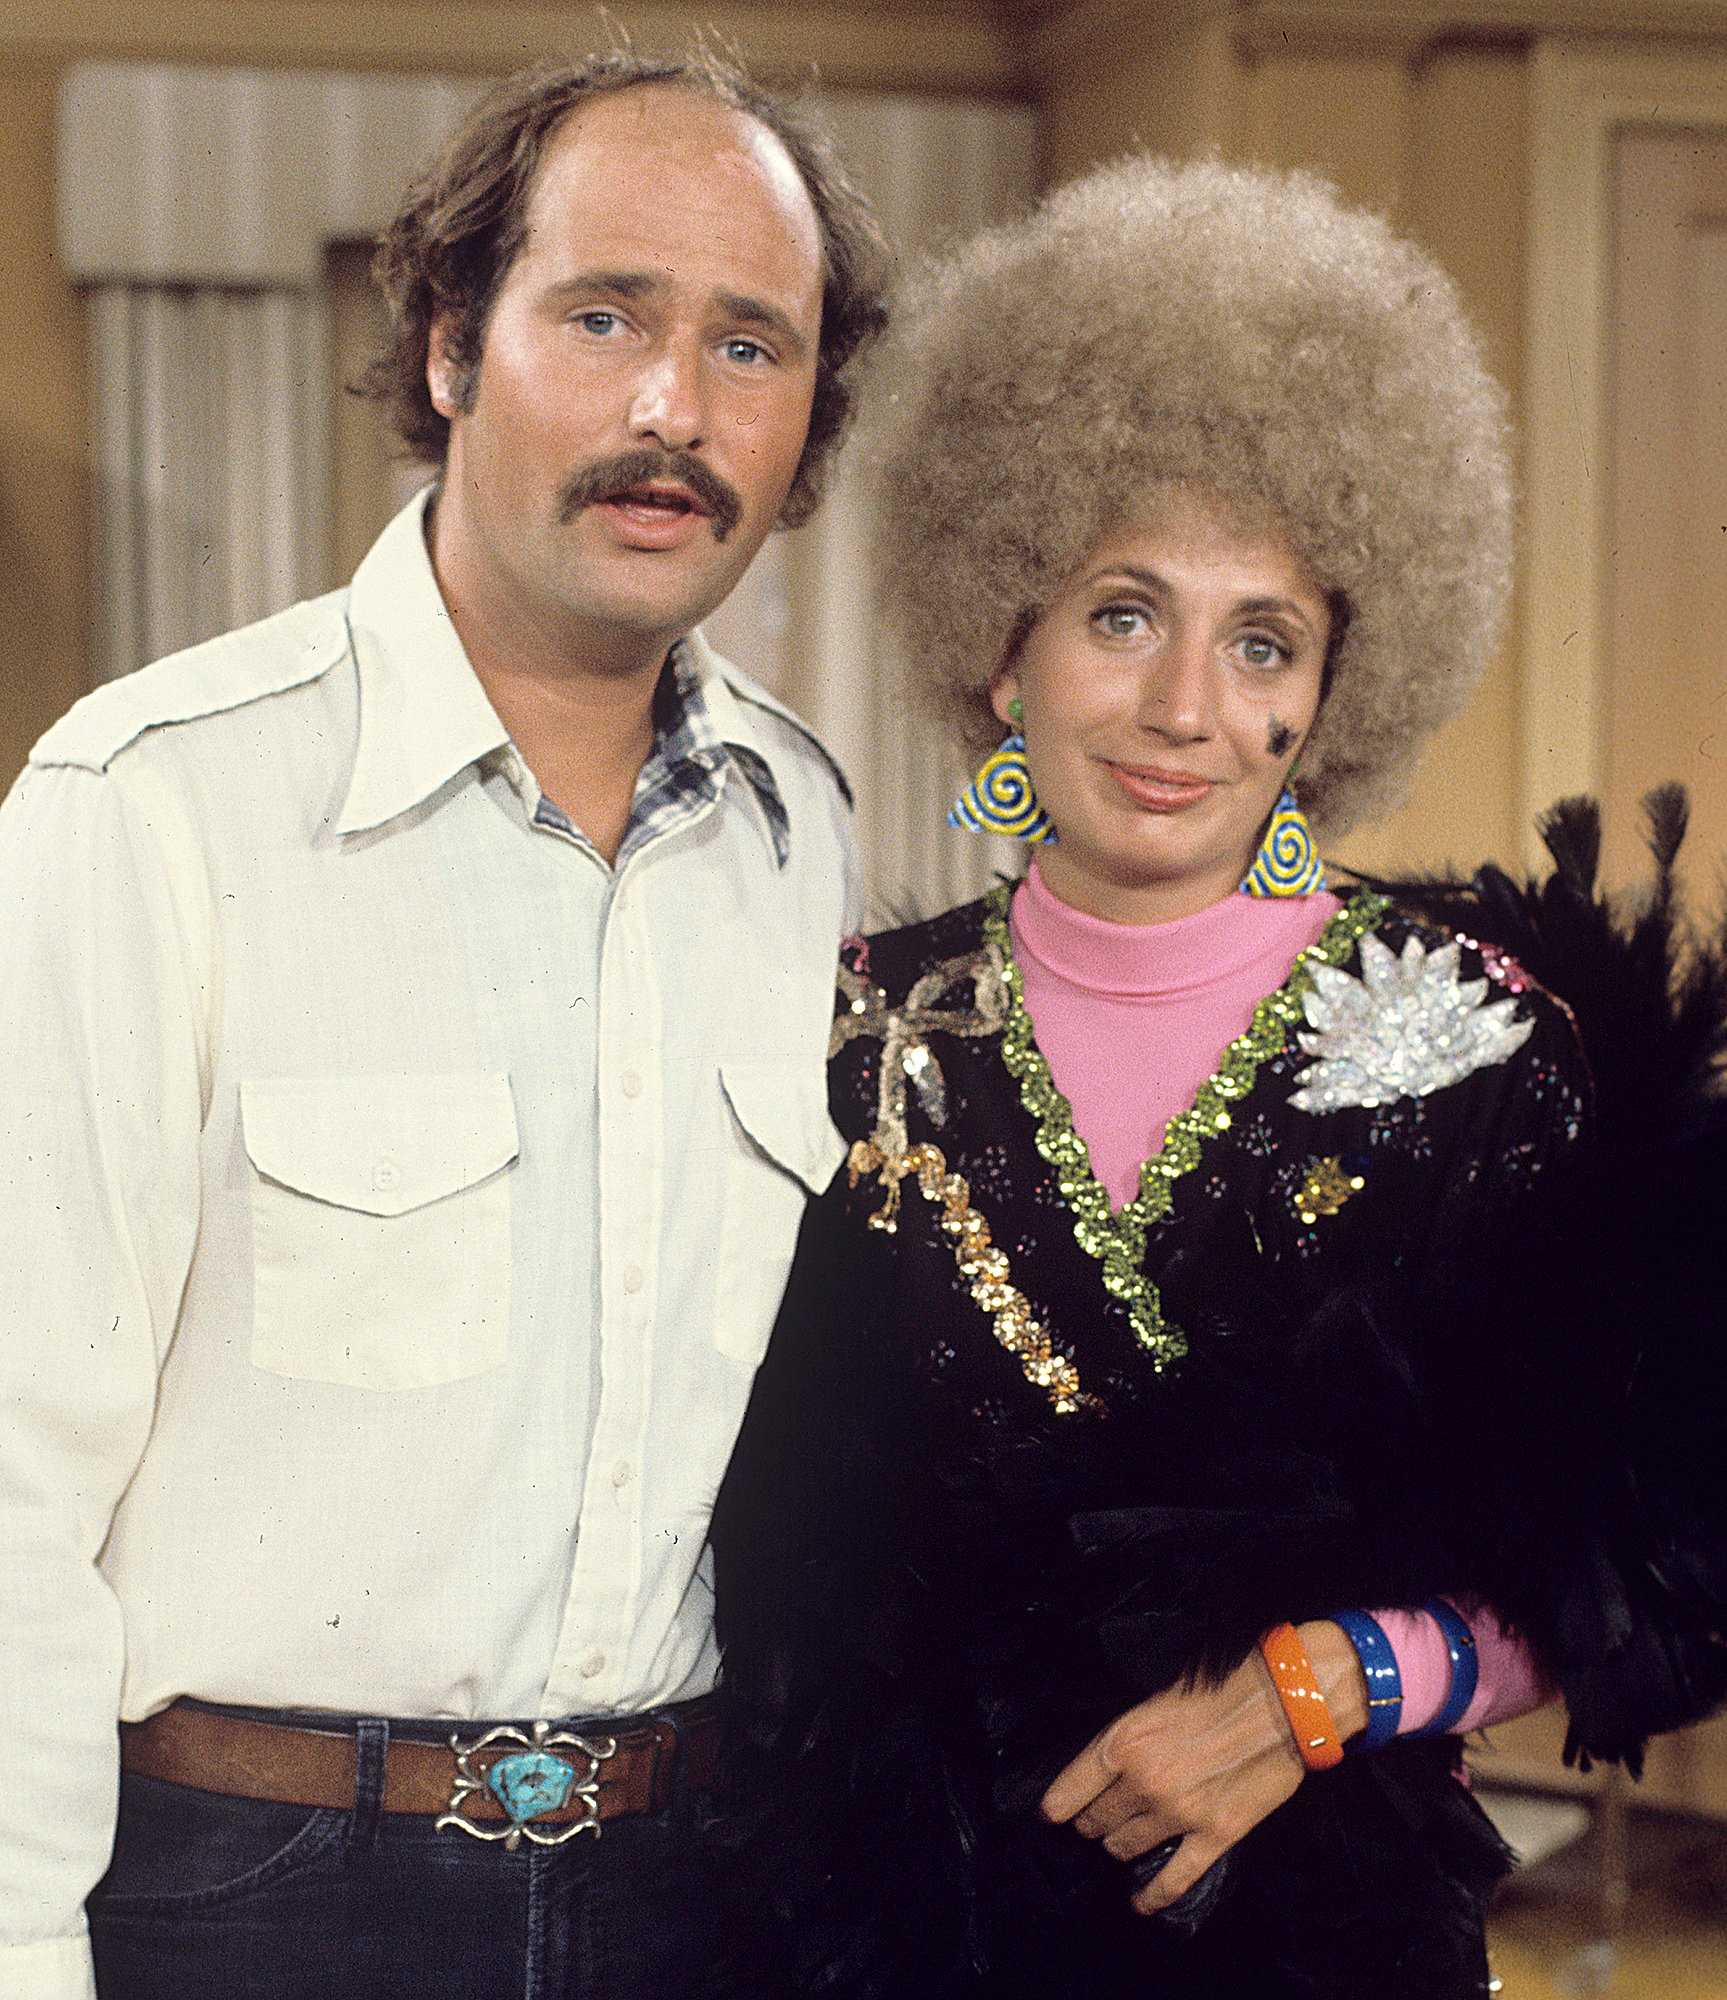 Rob-Reiner-Penny-Marshall death - Rob Reiner and Penny Marshall in The Odd Couple, 1974.